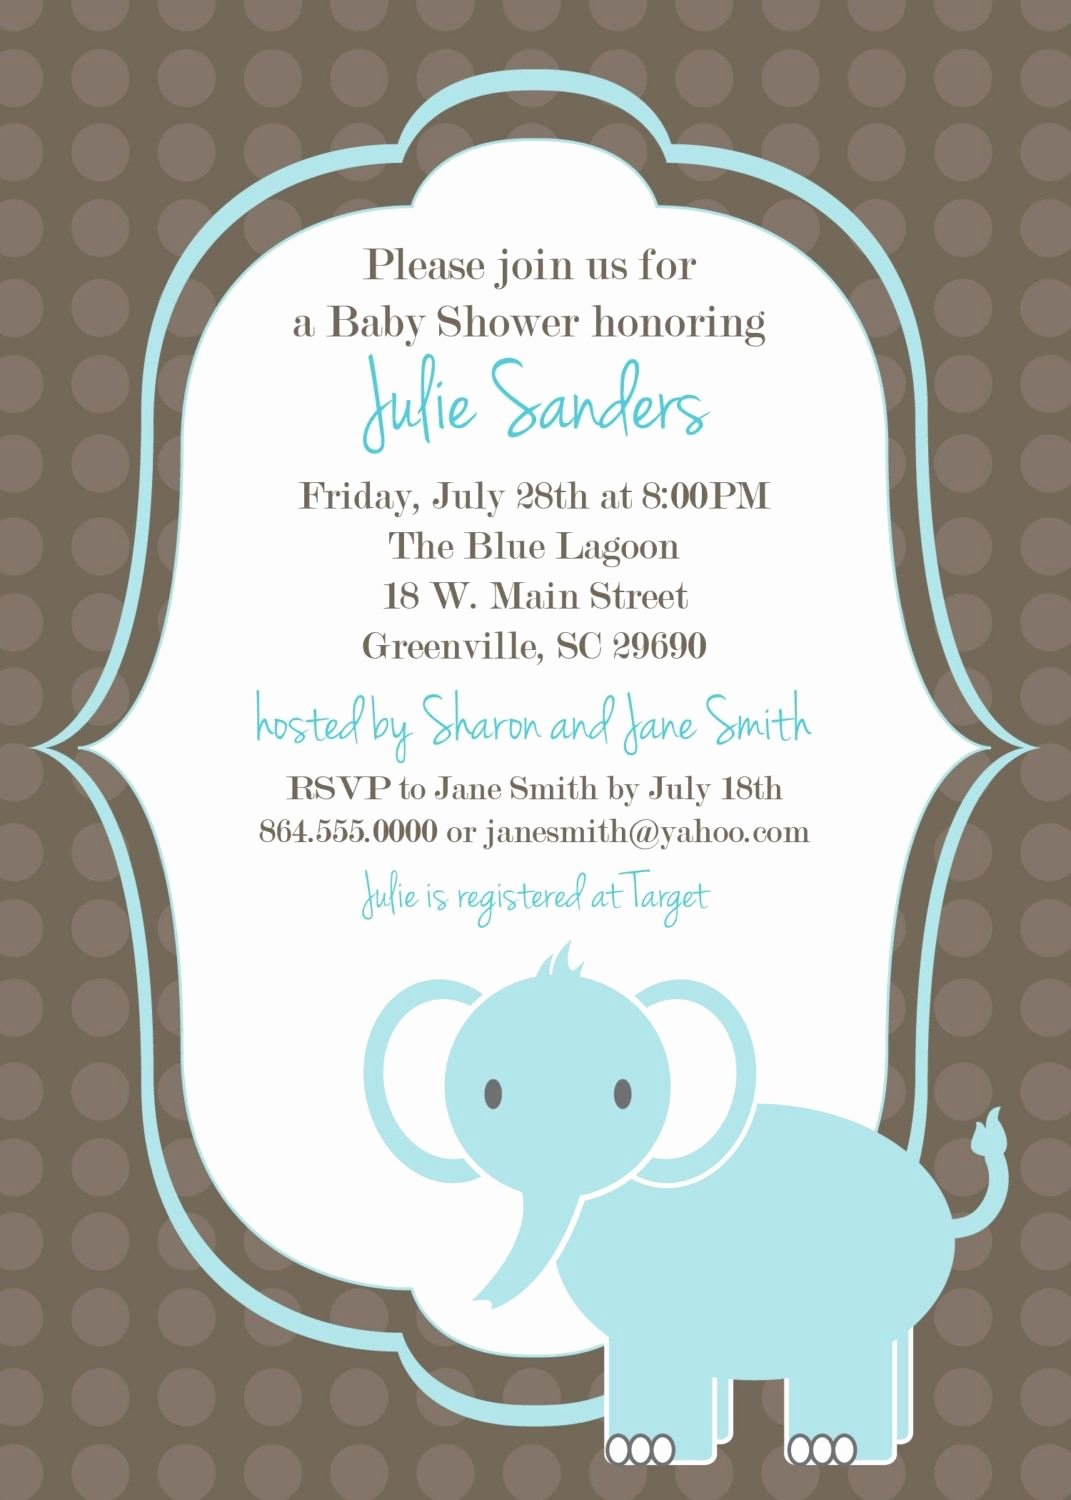 Baby Shower Card Template Inspirational Download Free Template Got the Free Baby Shower